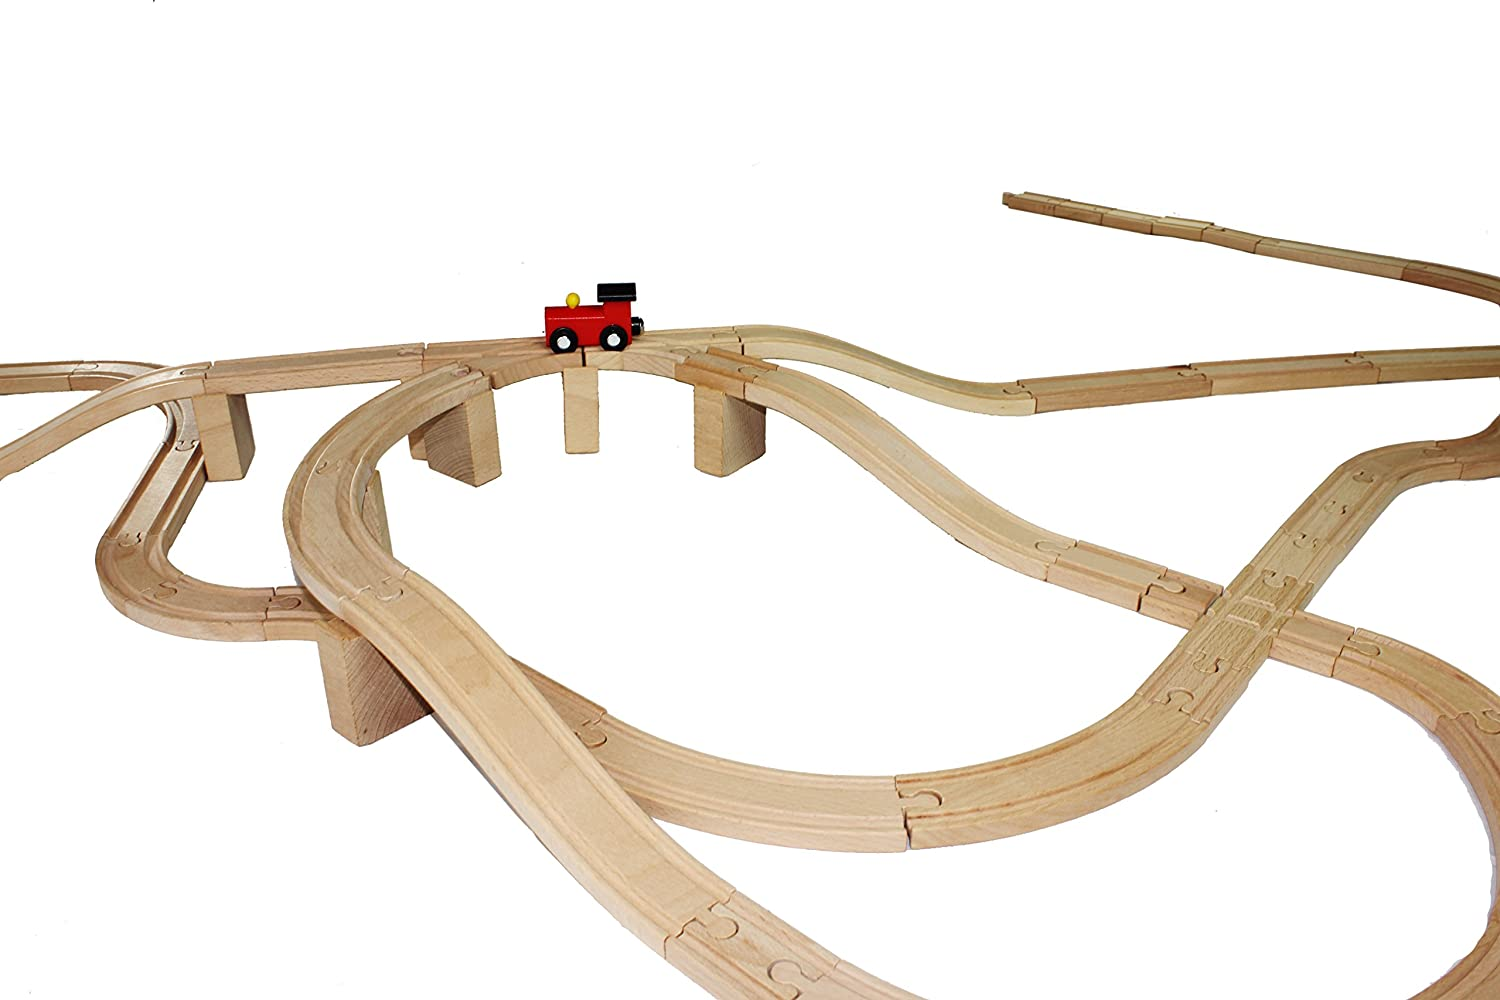 62 Pieces Wooden Train Track Expansion Set NEW Version Compatible with All Major Brands Including Thomas Battery Operated Motorized Ones by Joyin Toy Joyin Inc 1 Bonus Toy Train